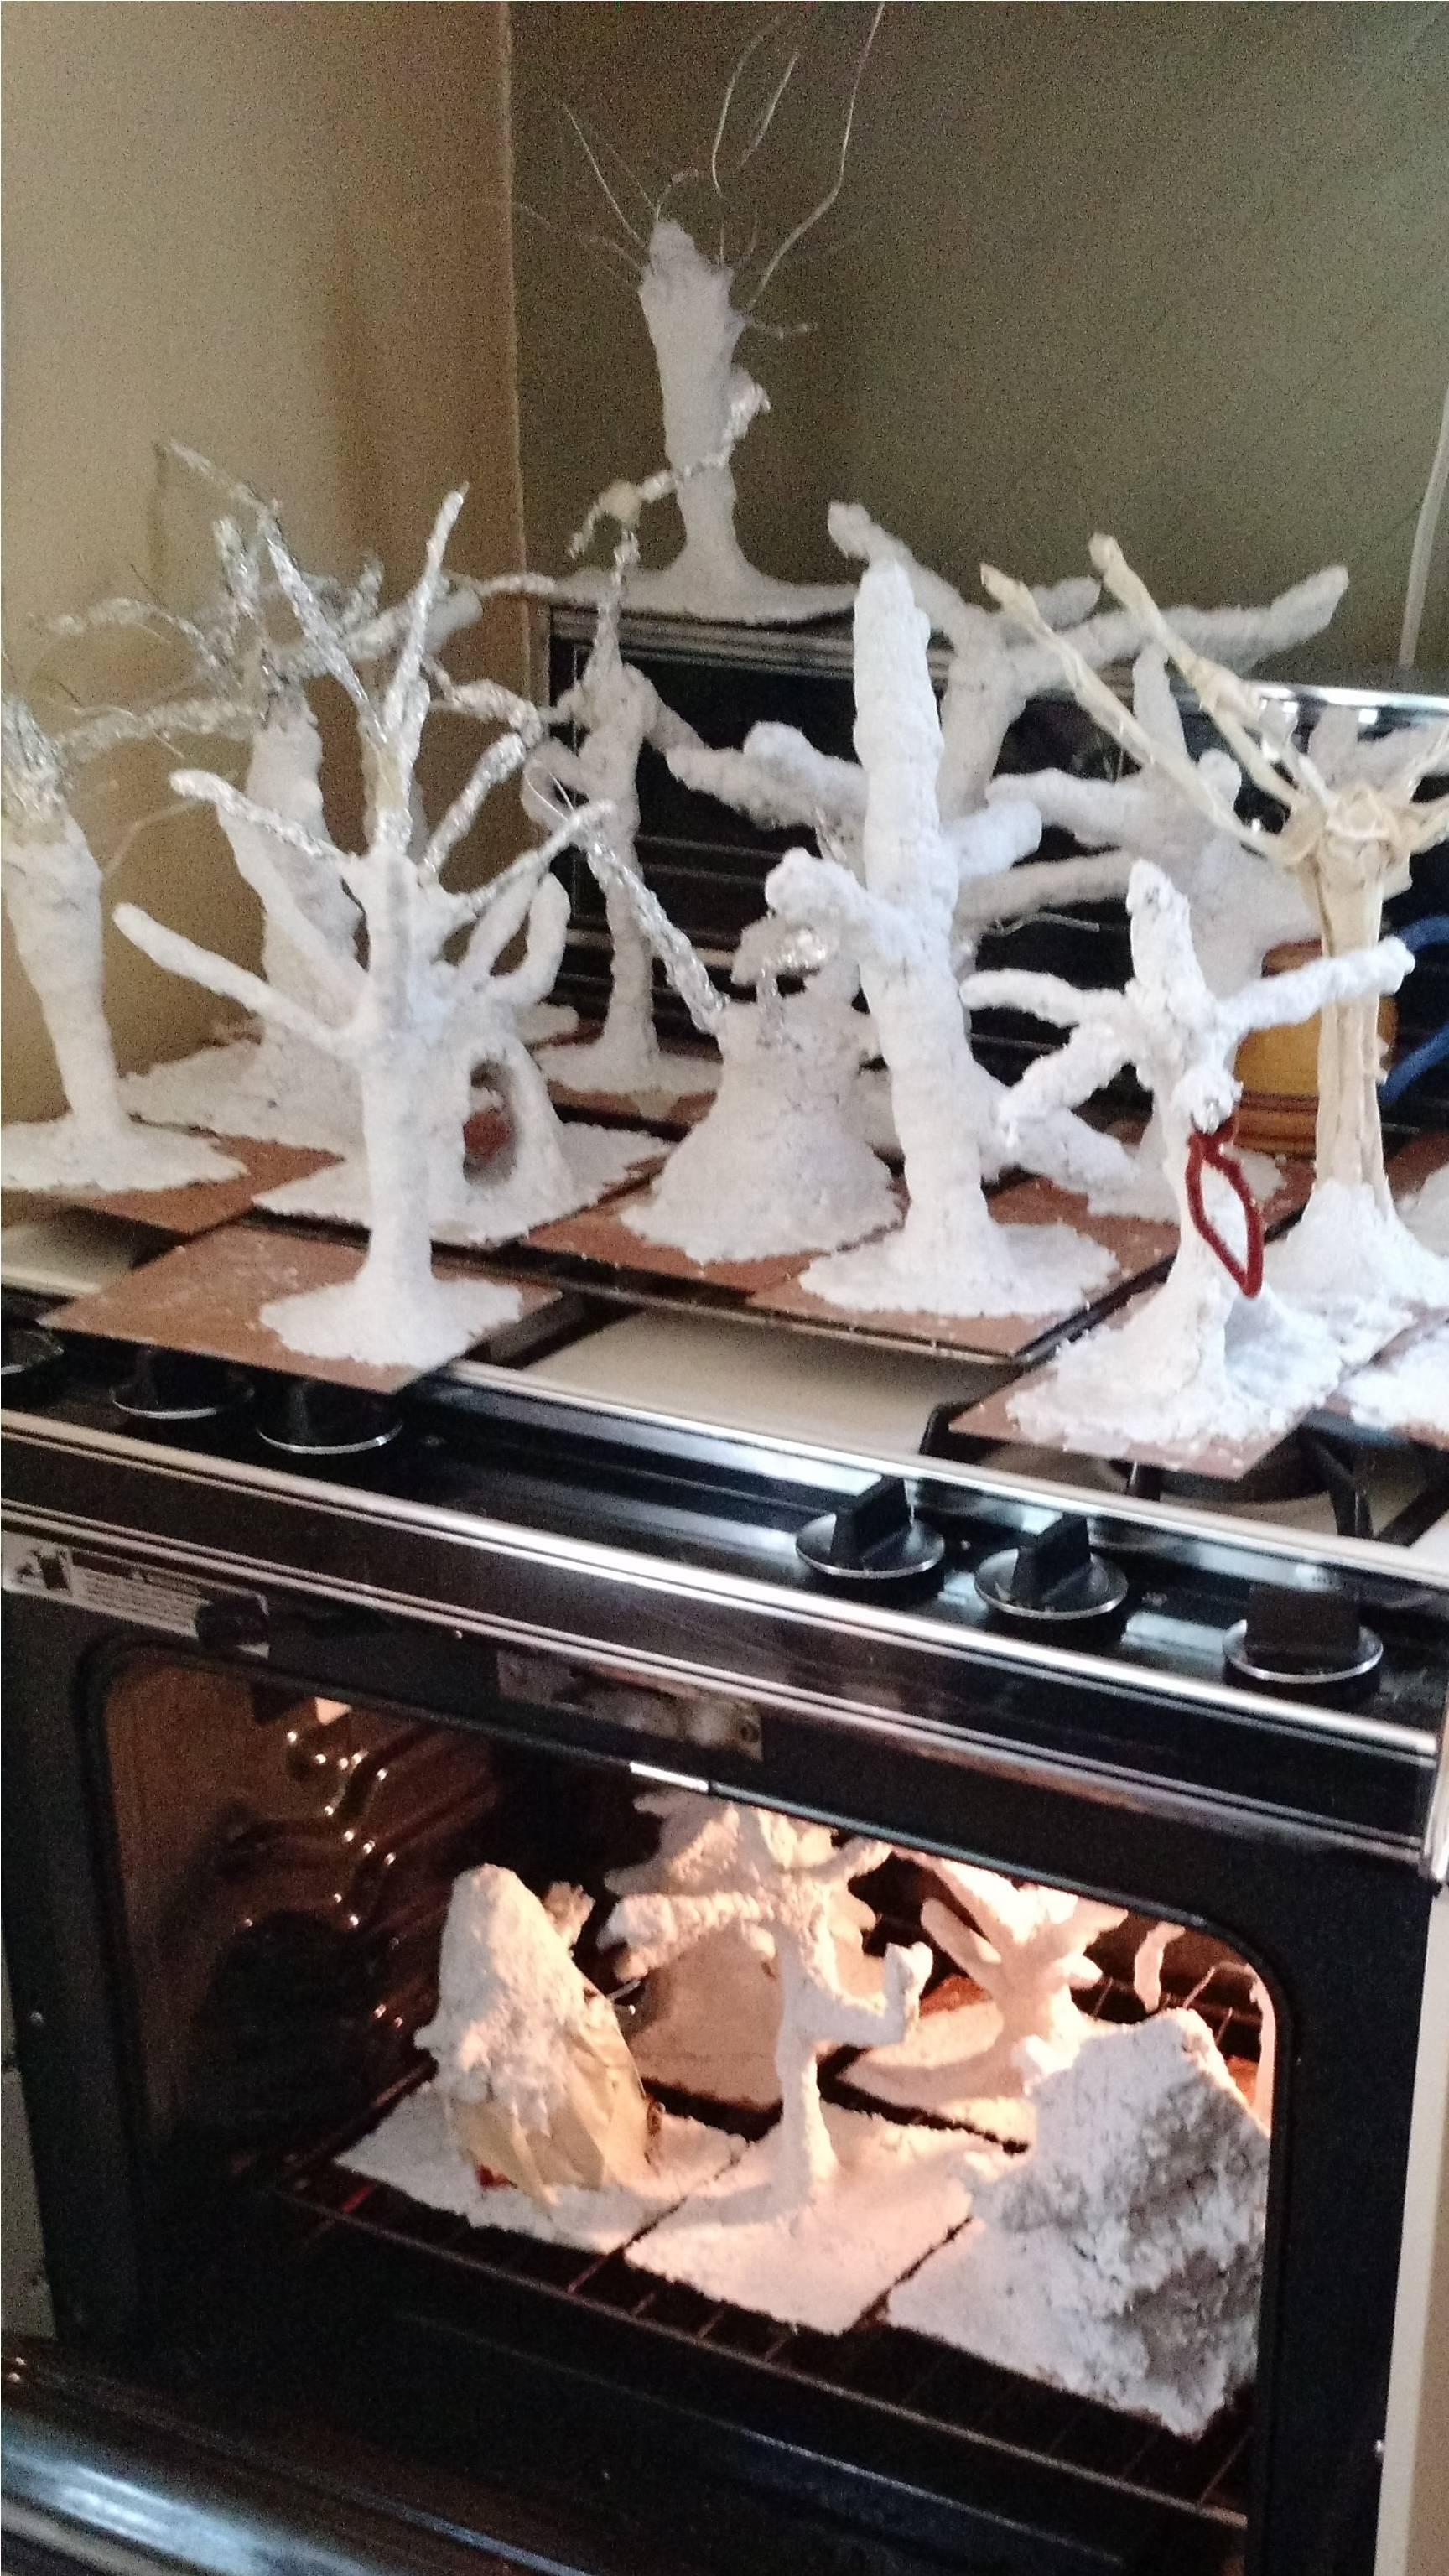 pm trees photo in oven.jpg